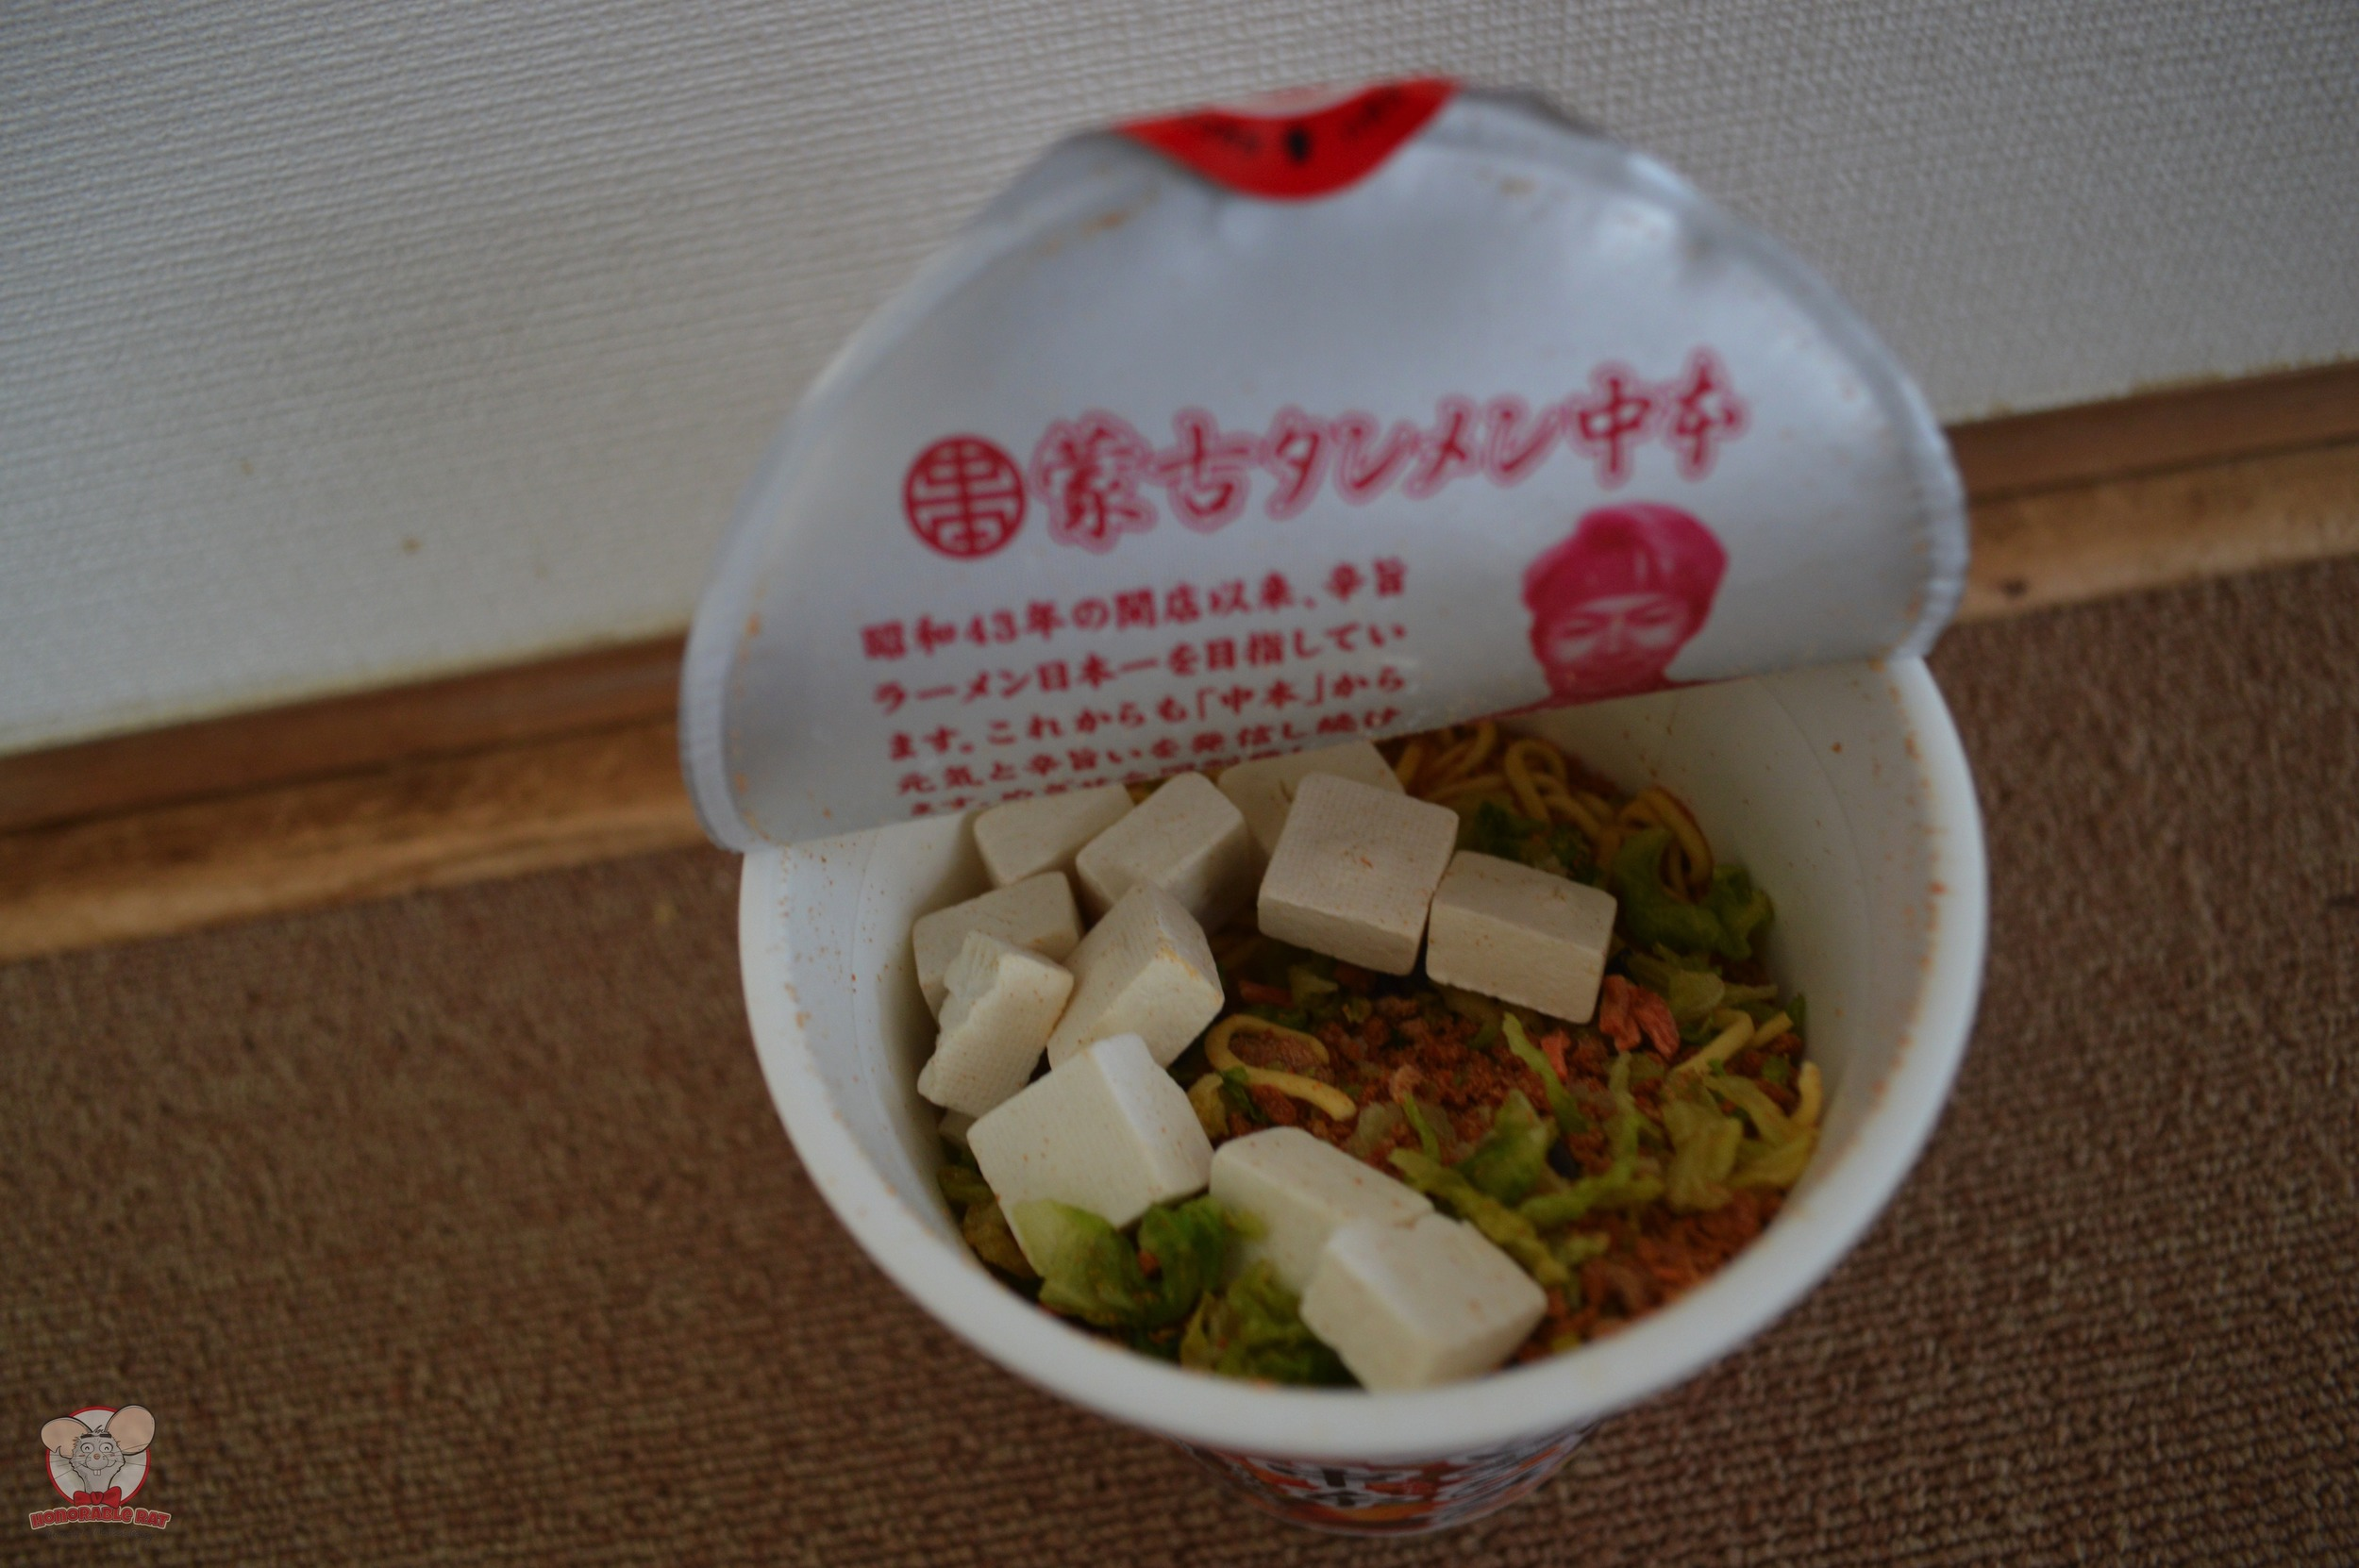 The inside of Nakamoto Moukotanmen Cup Noodles